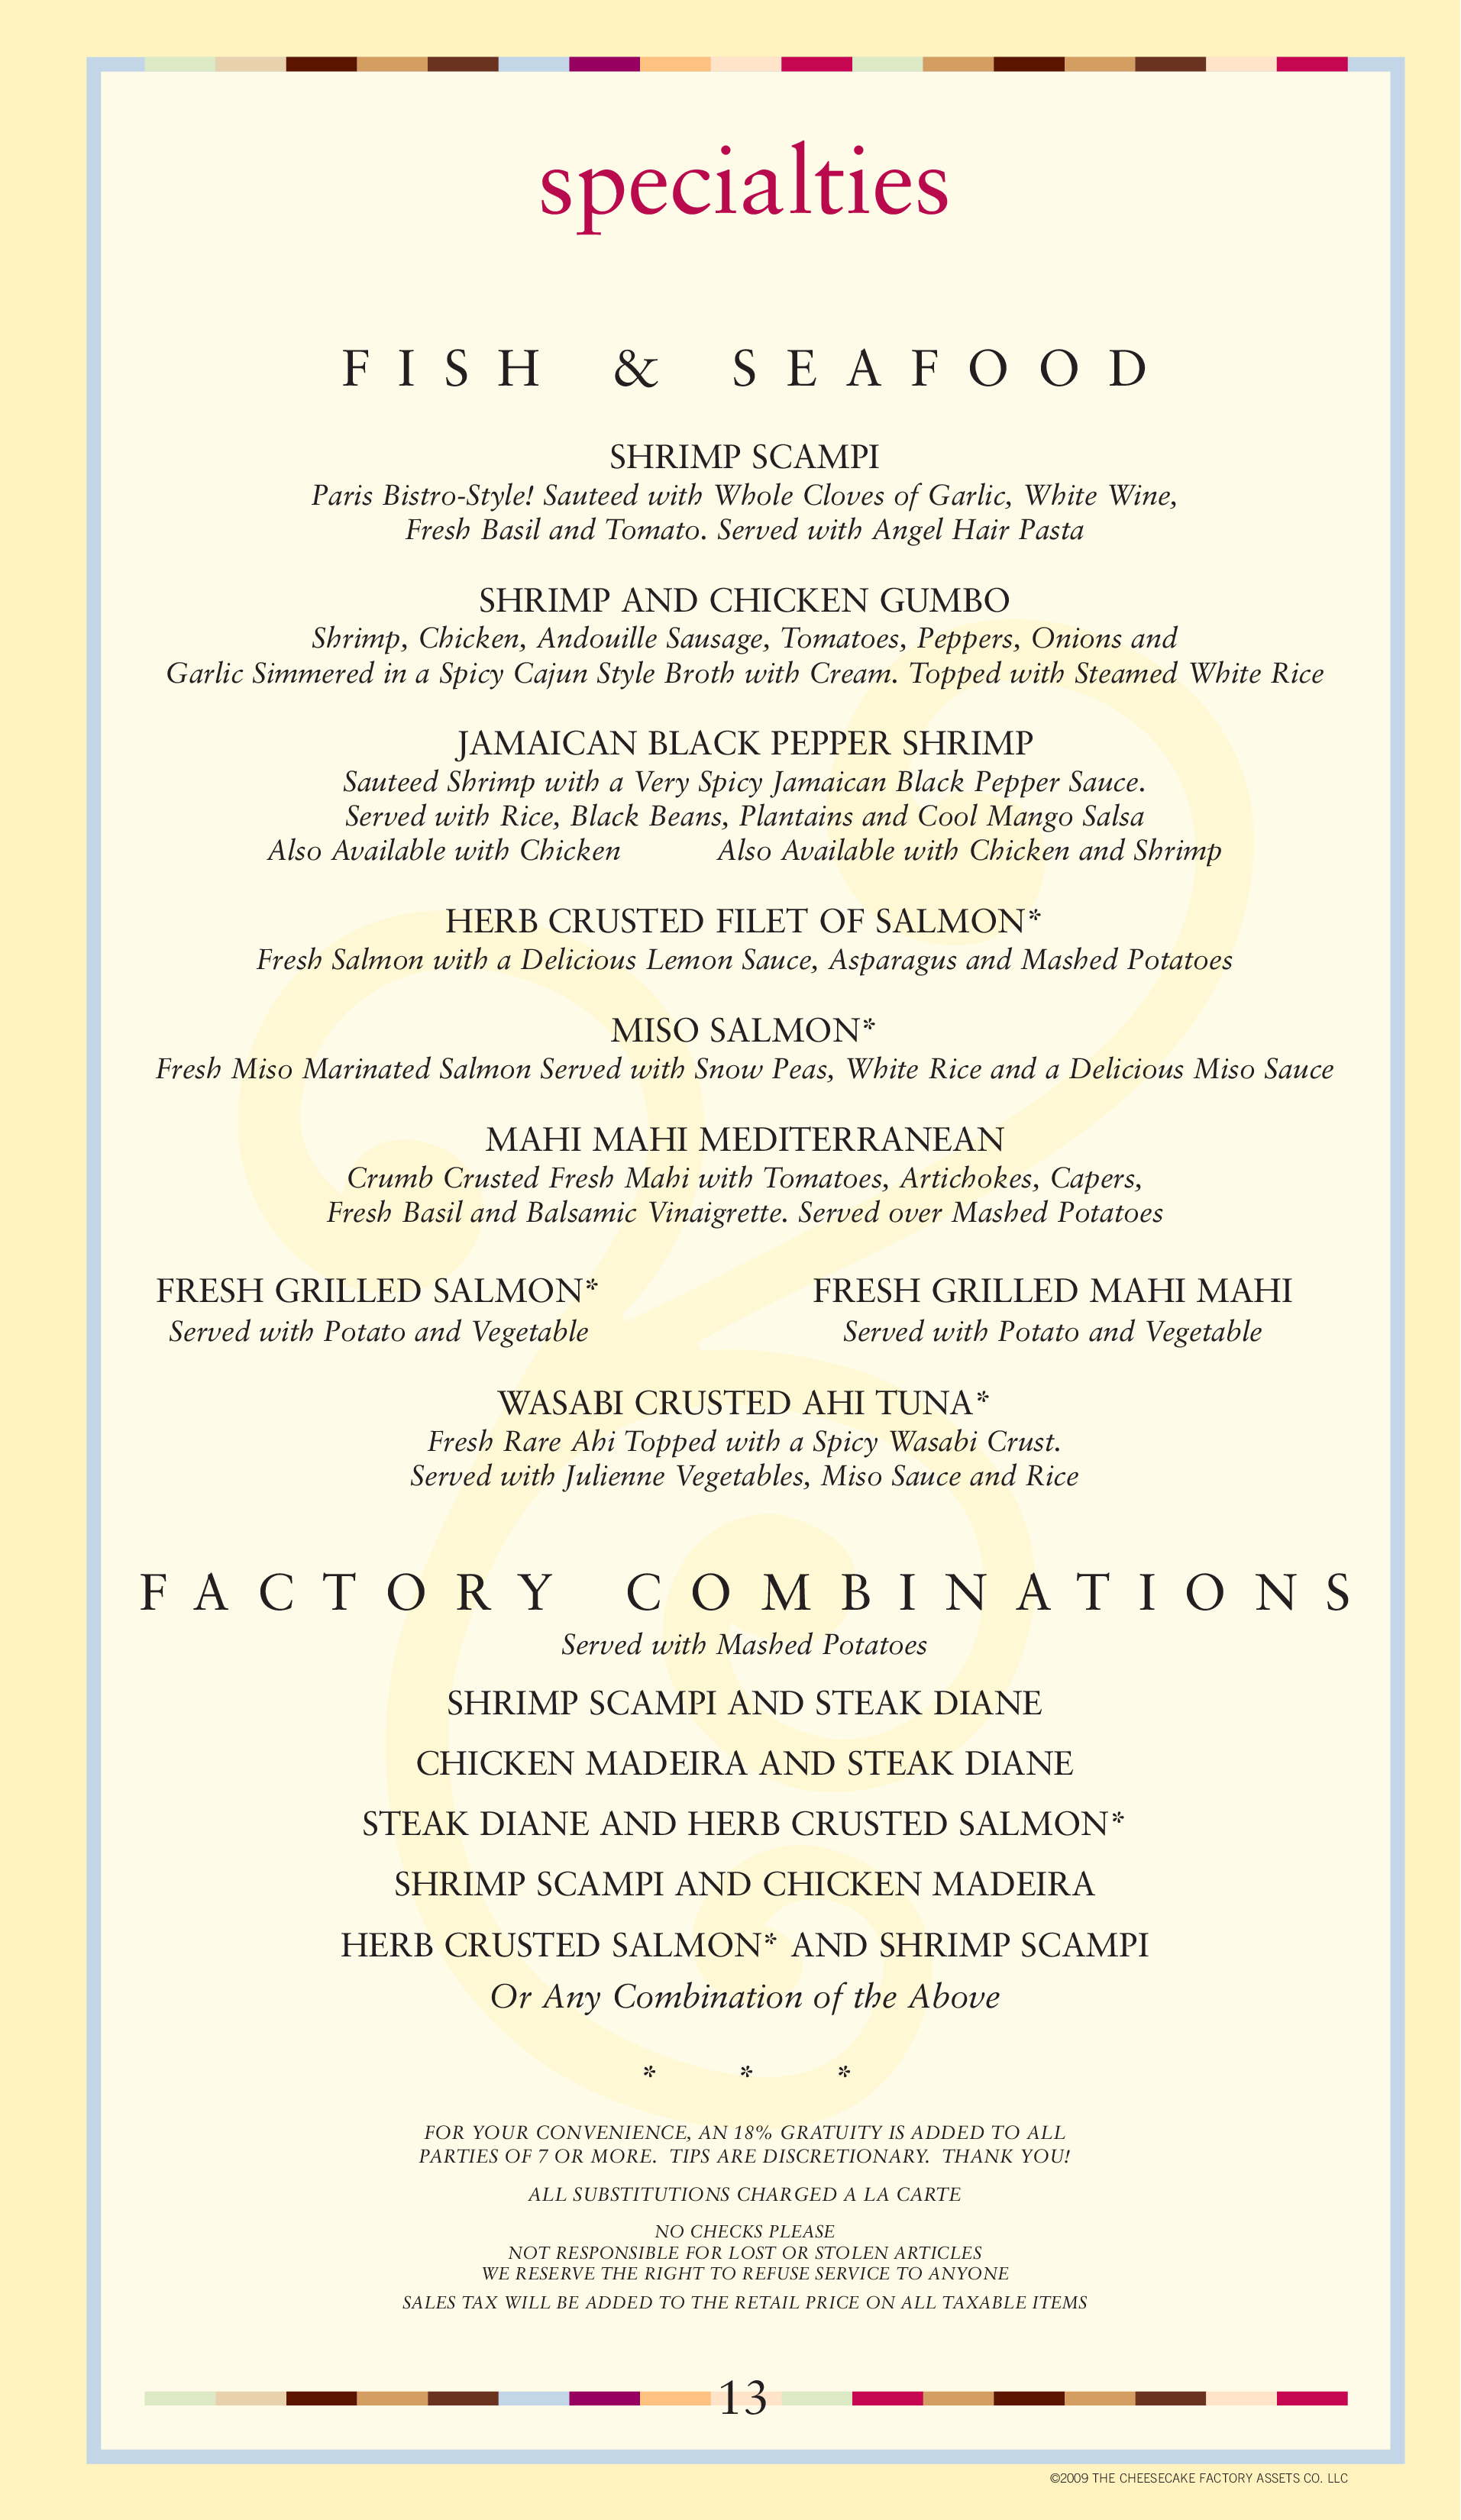 photo regarding Cheesecake Factory Printable Menu known as Menu at The Cheesecake Manufacturing unit desserts, Jacksonville, Mid